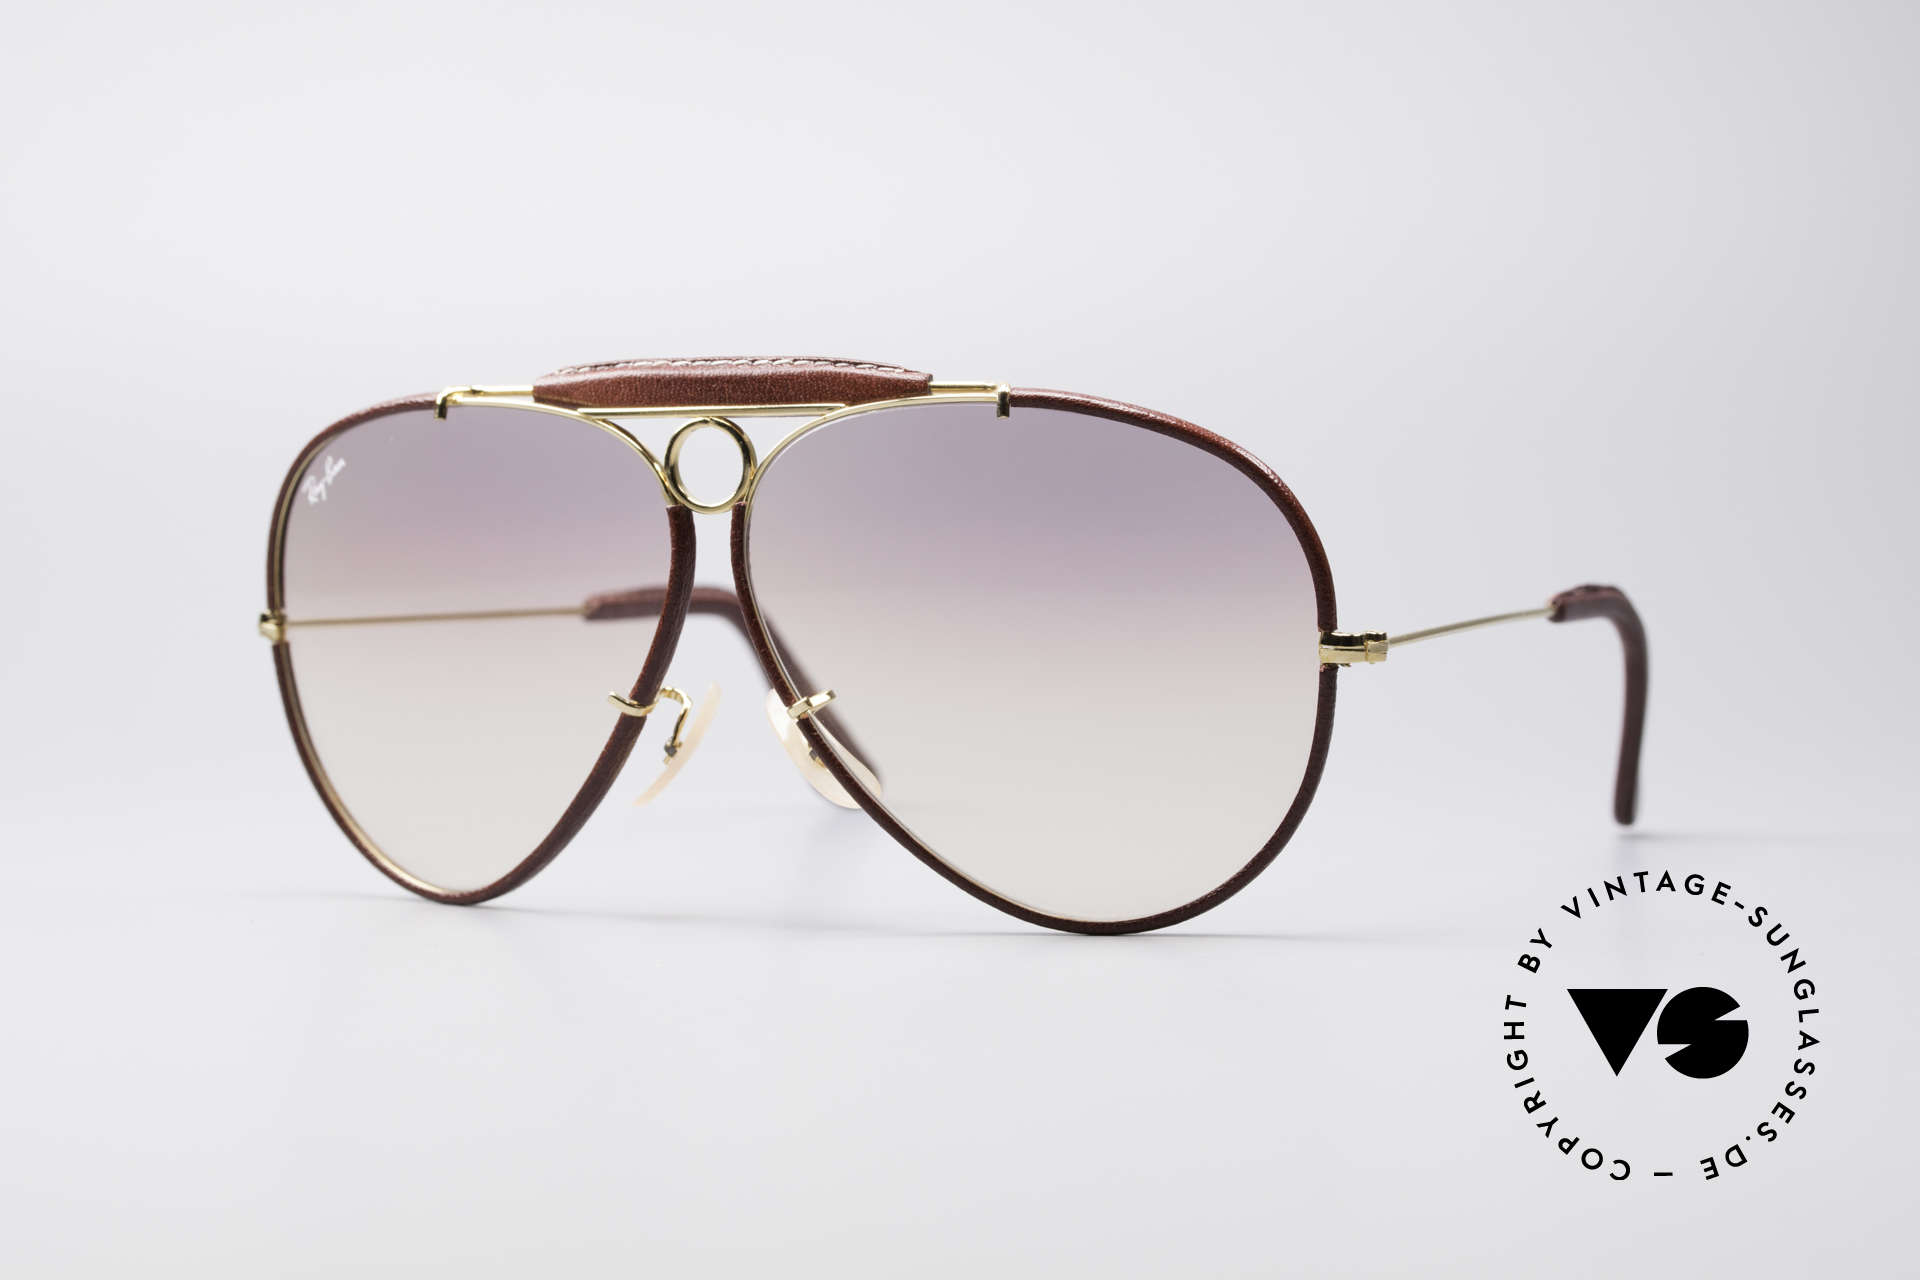 Ray Ban Ambermatic Shooting Sunglasses Heritage Malta